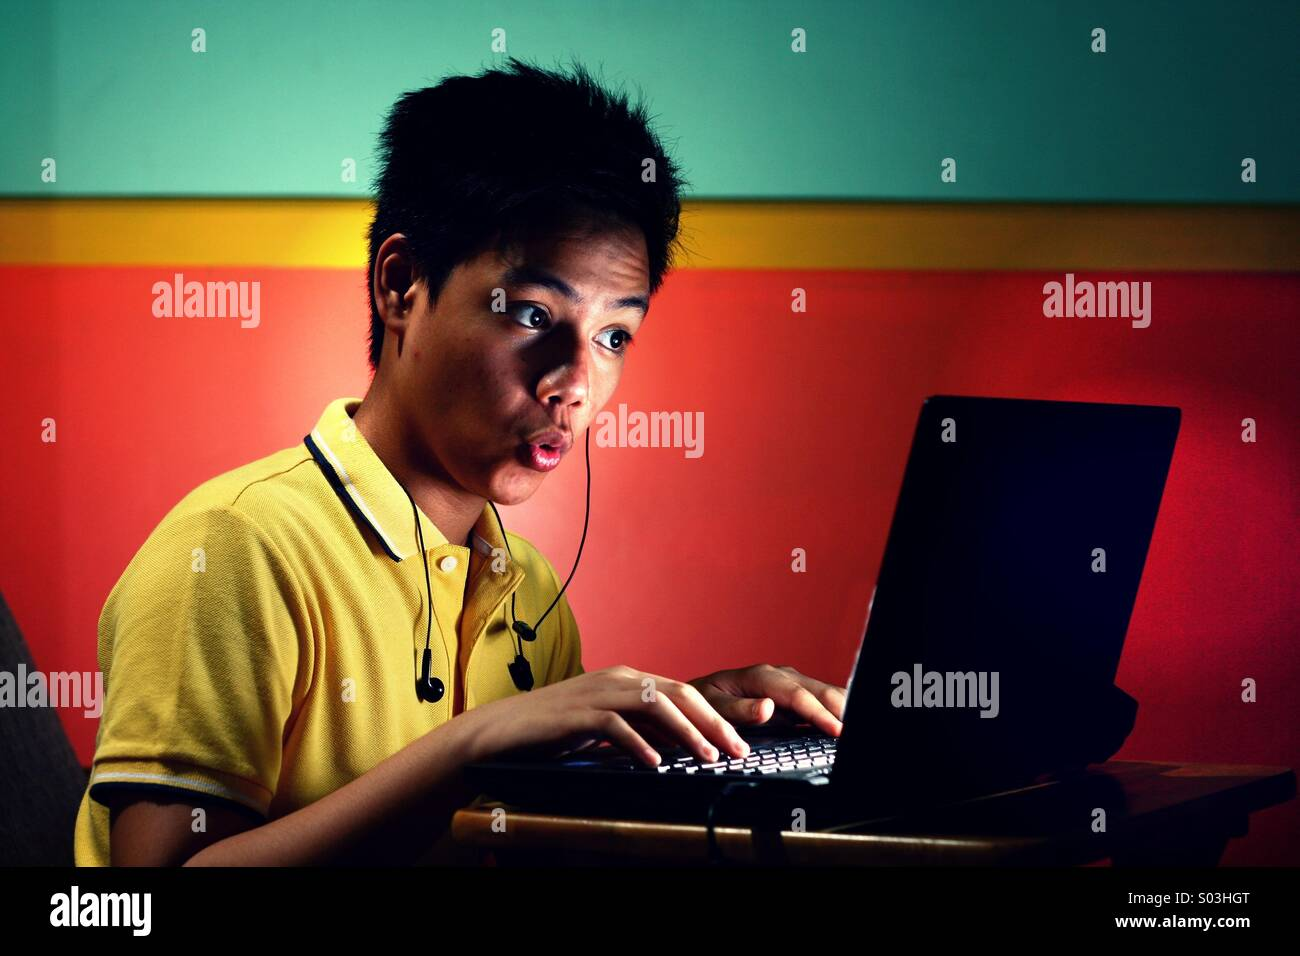 Asian teenager boy working or studying on a laptop computer - Stock Image